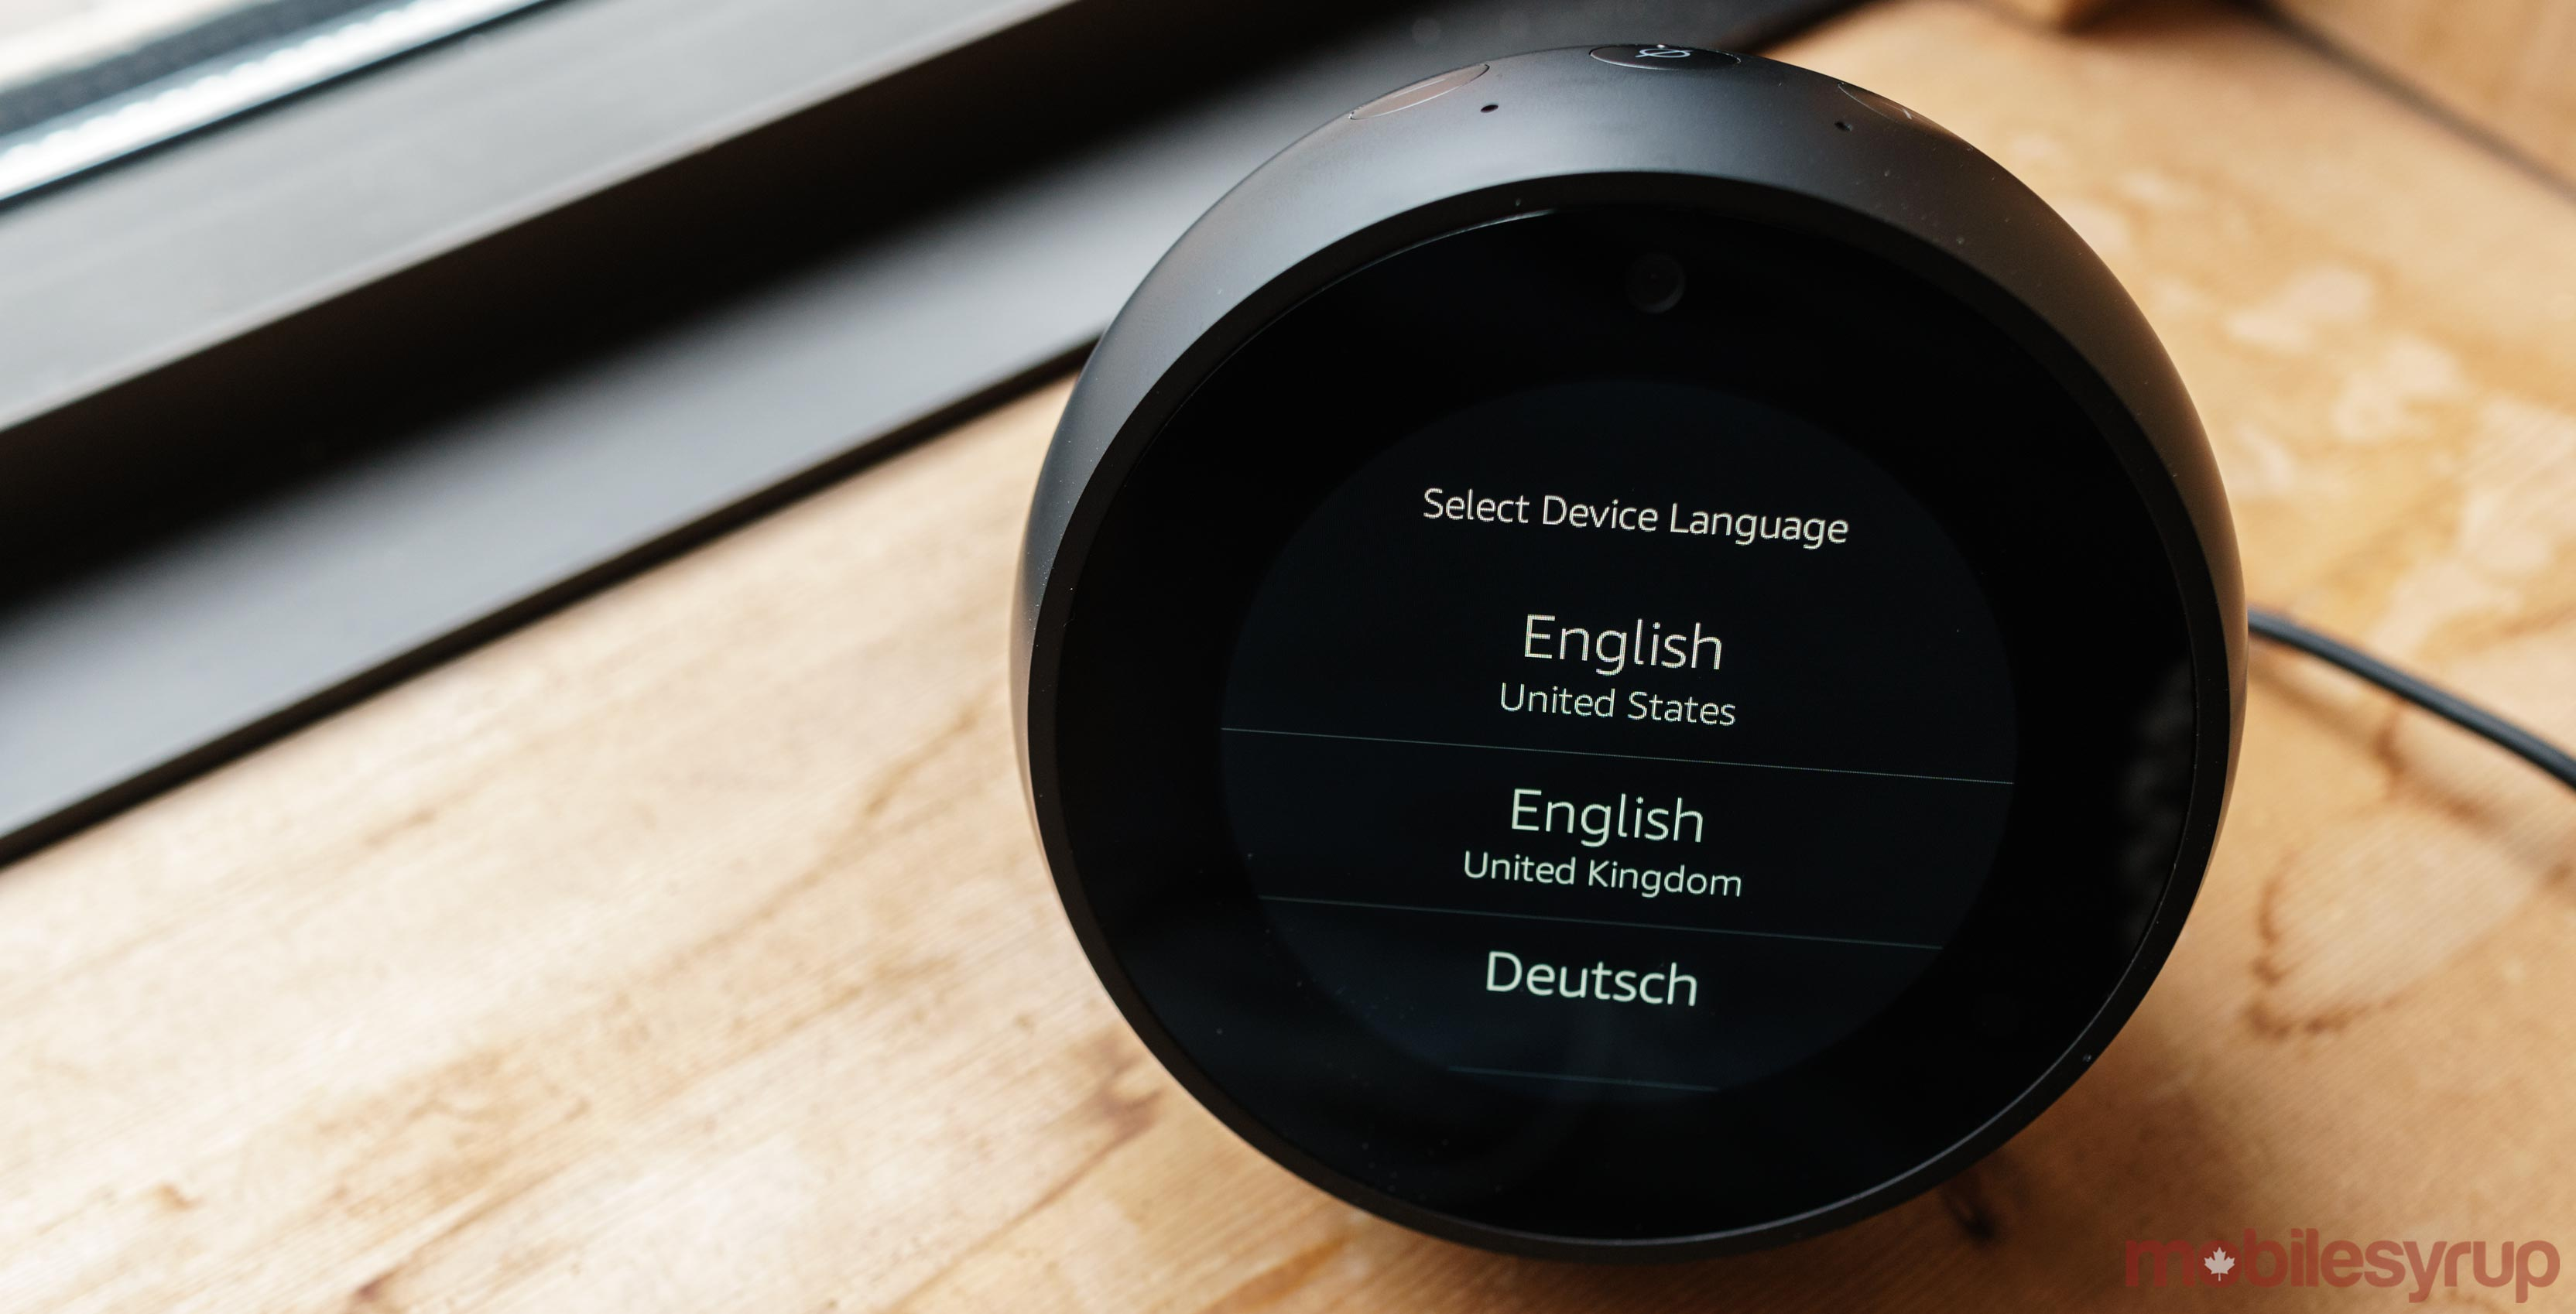 Google Assistant is Smarter than Amazon Alexa and Apple Siri